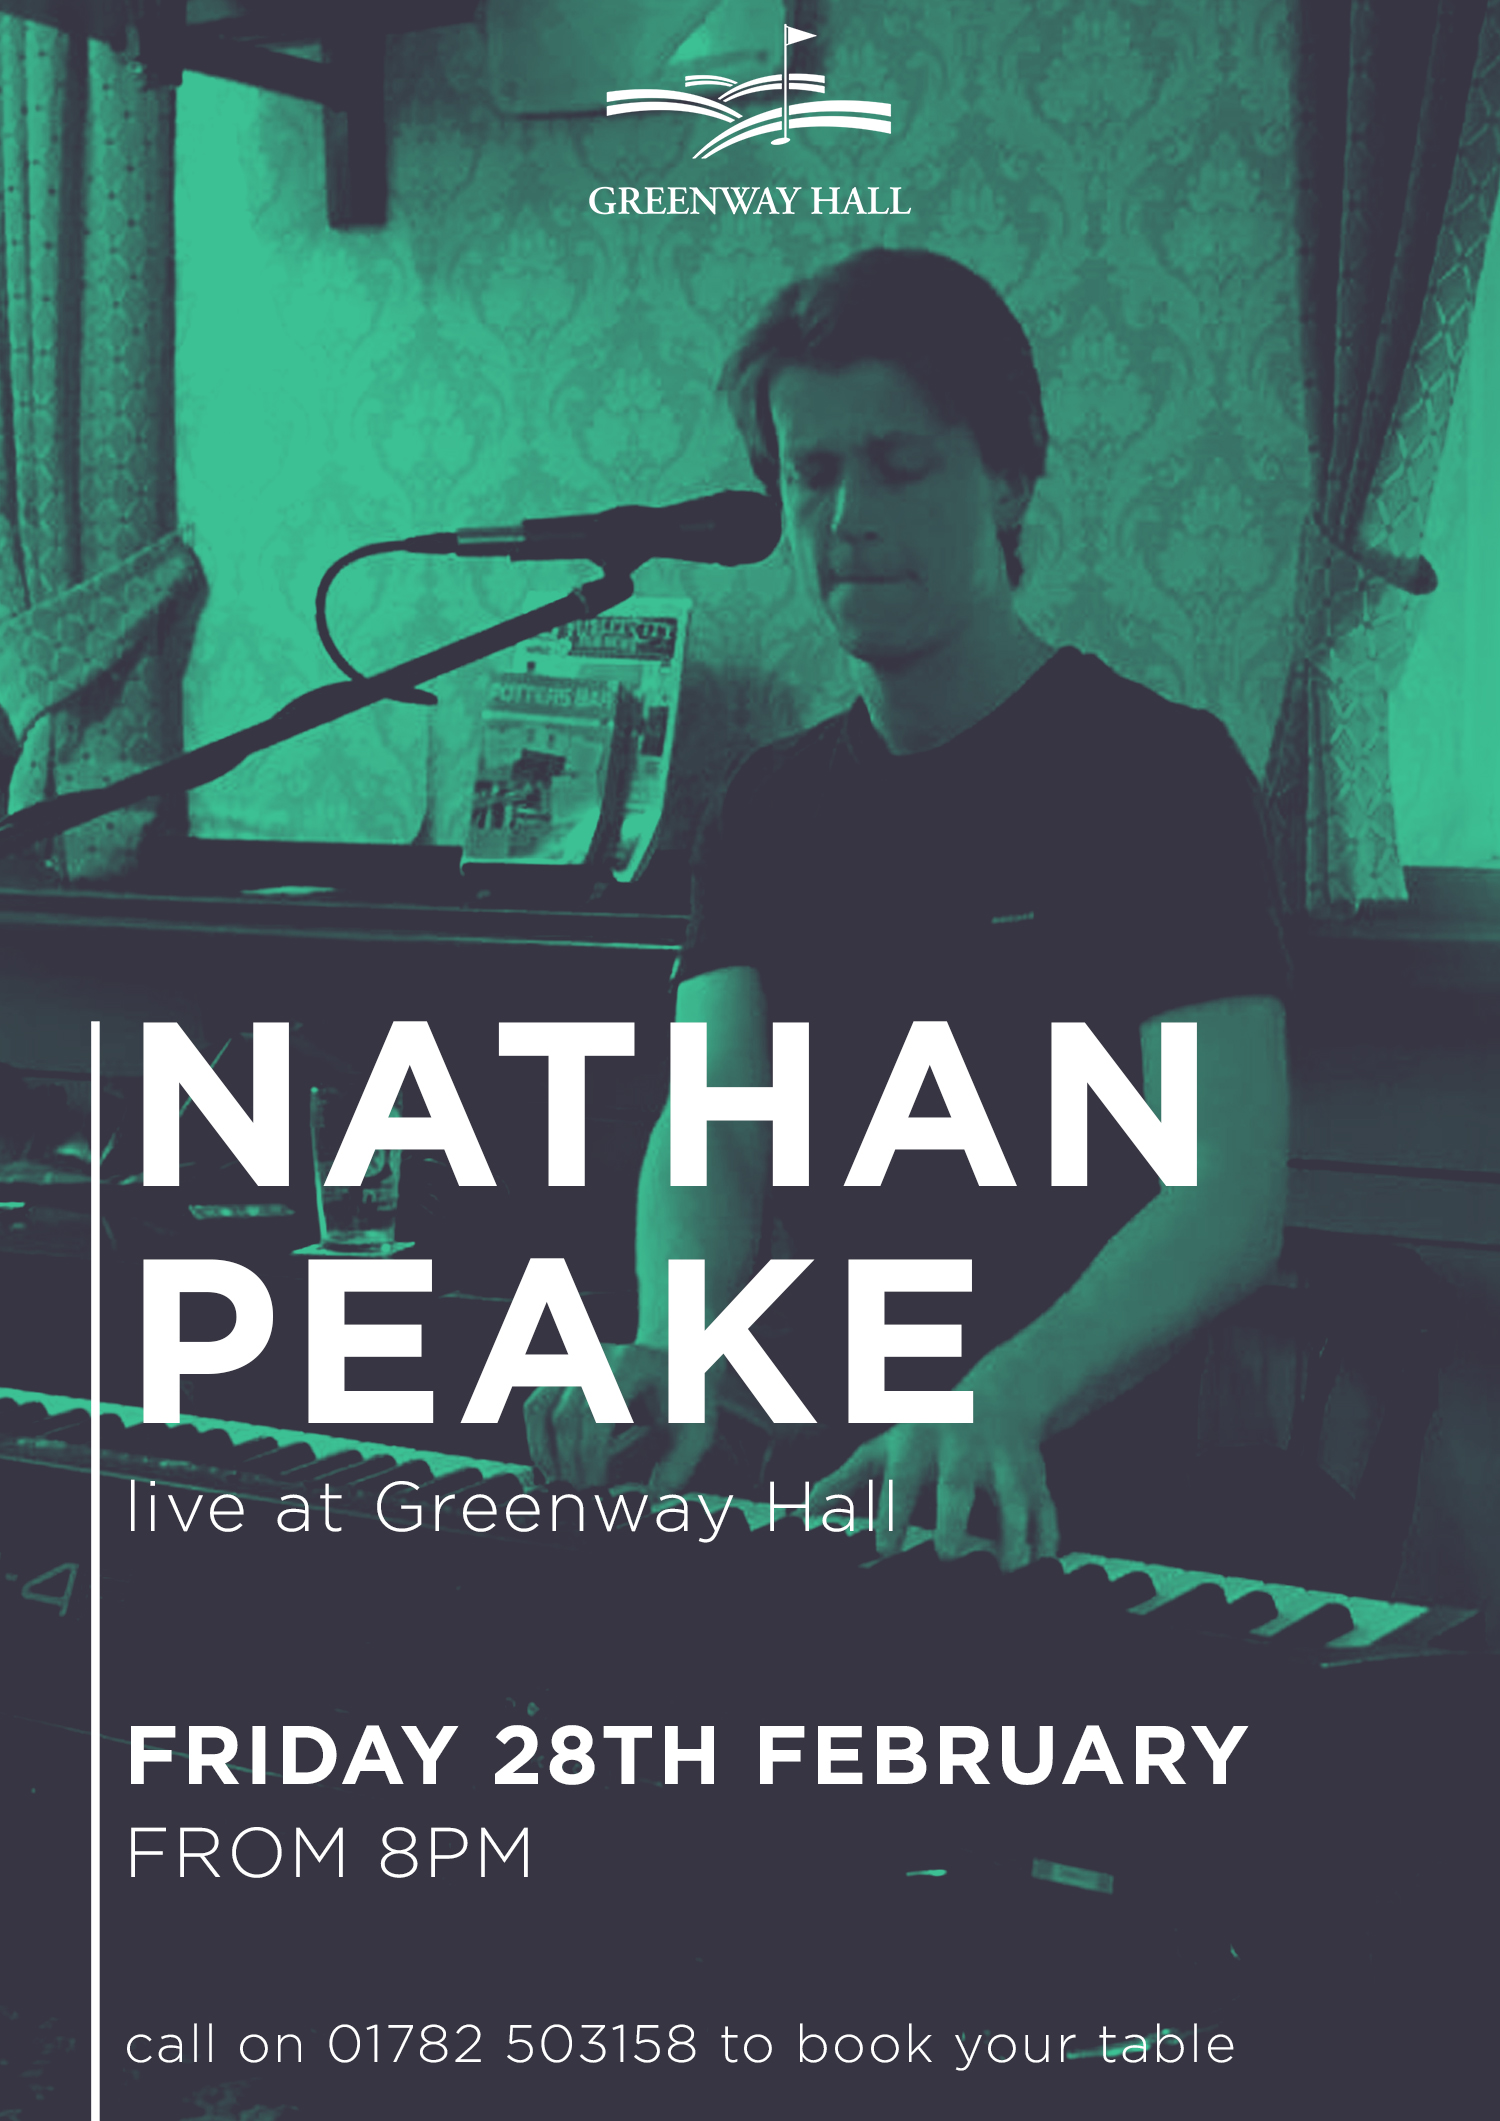 Come and see new artist Nathan Peake perform live at Greenway Hall on 28th February 2020